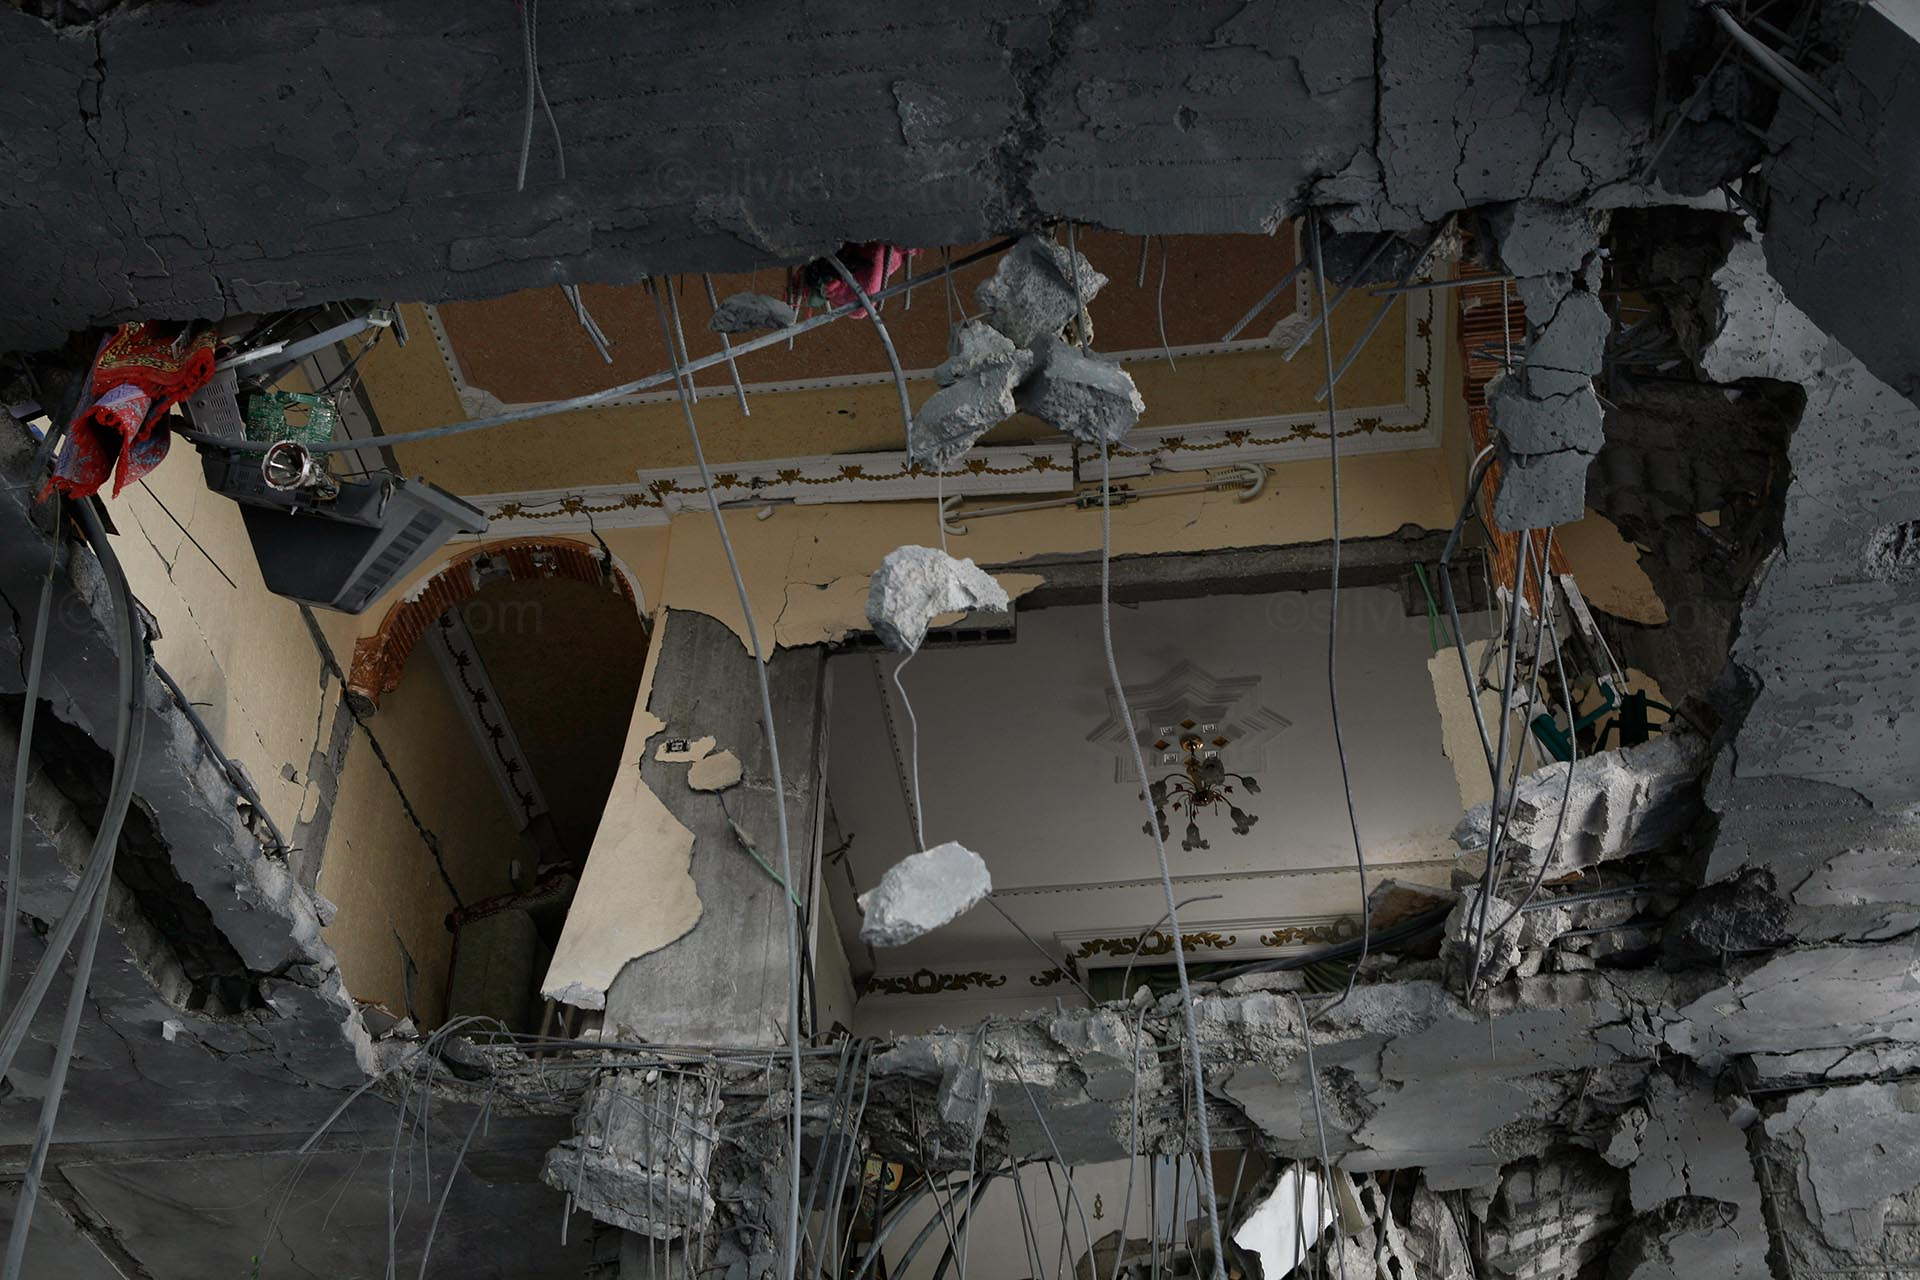 Tuffah, a living room seen through a bombed out floor. Gaza, August 2014